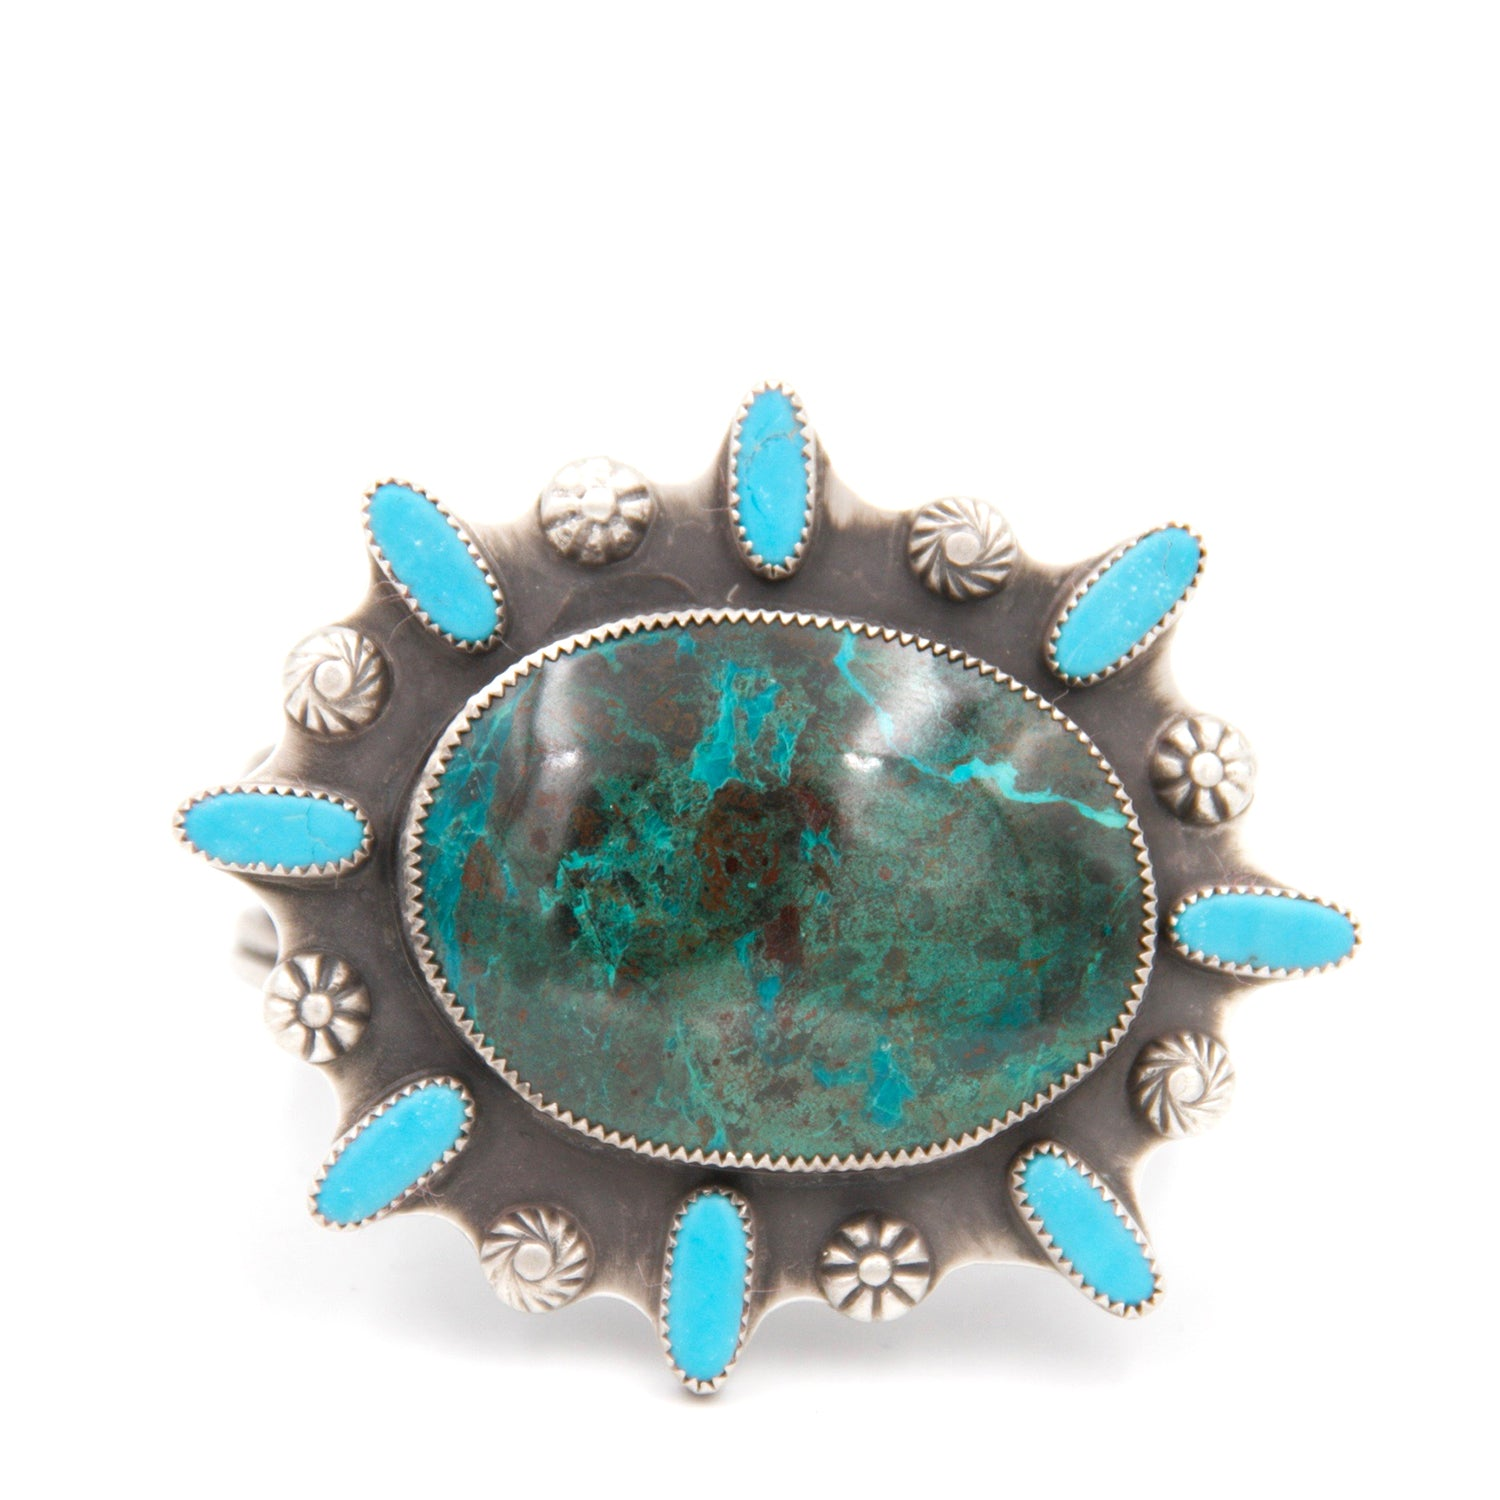 Chrysocolla and Mexican Turquoise Statement Cuff Bracelet